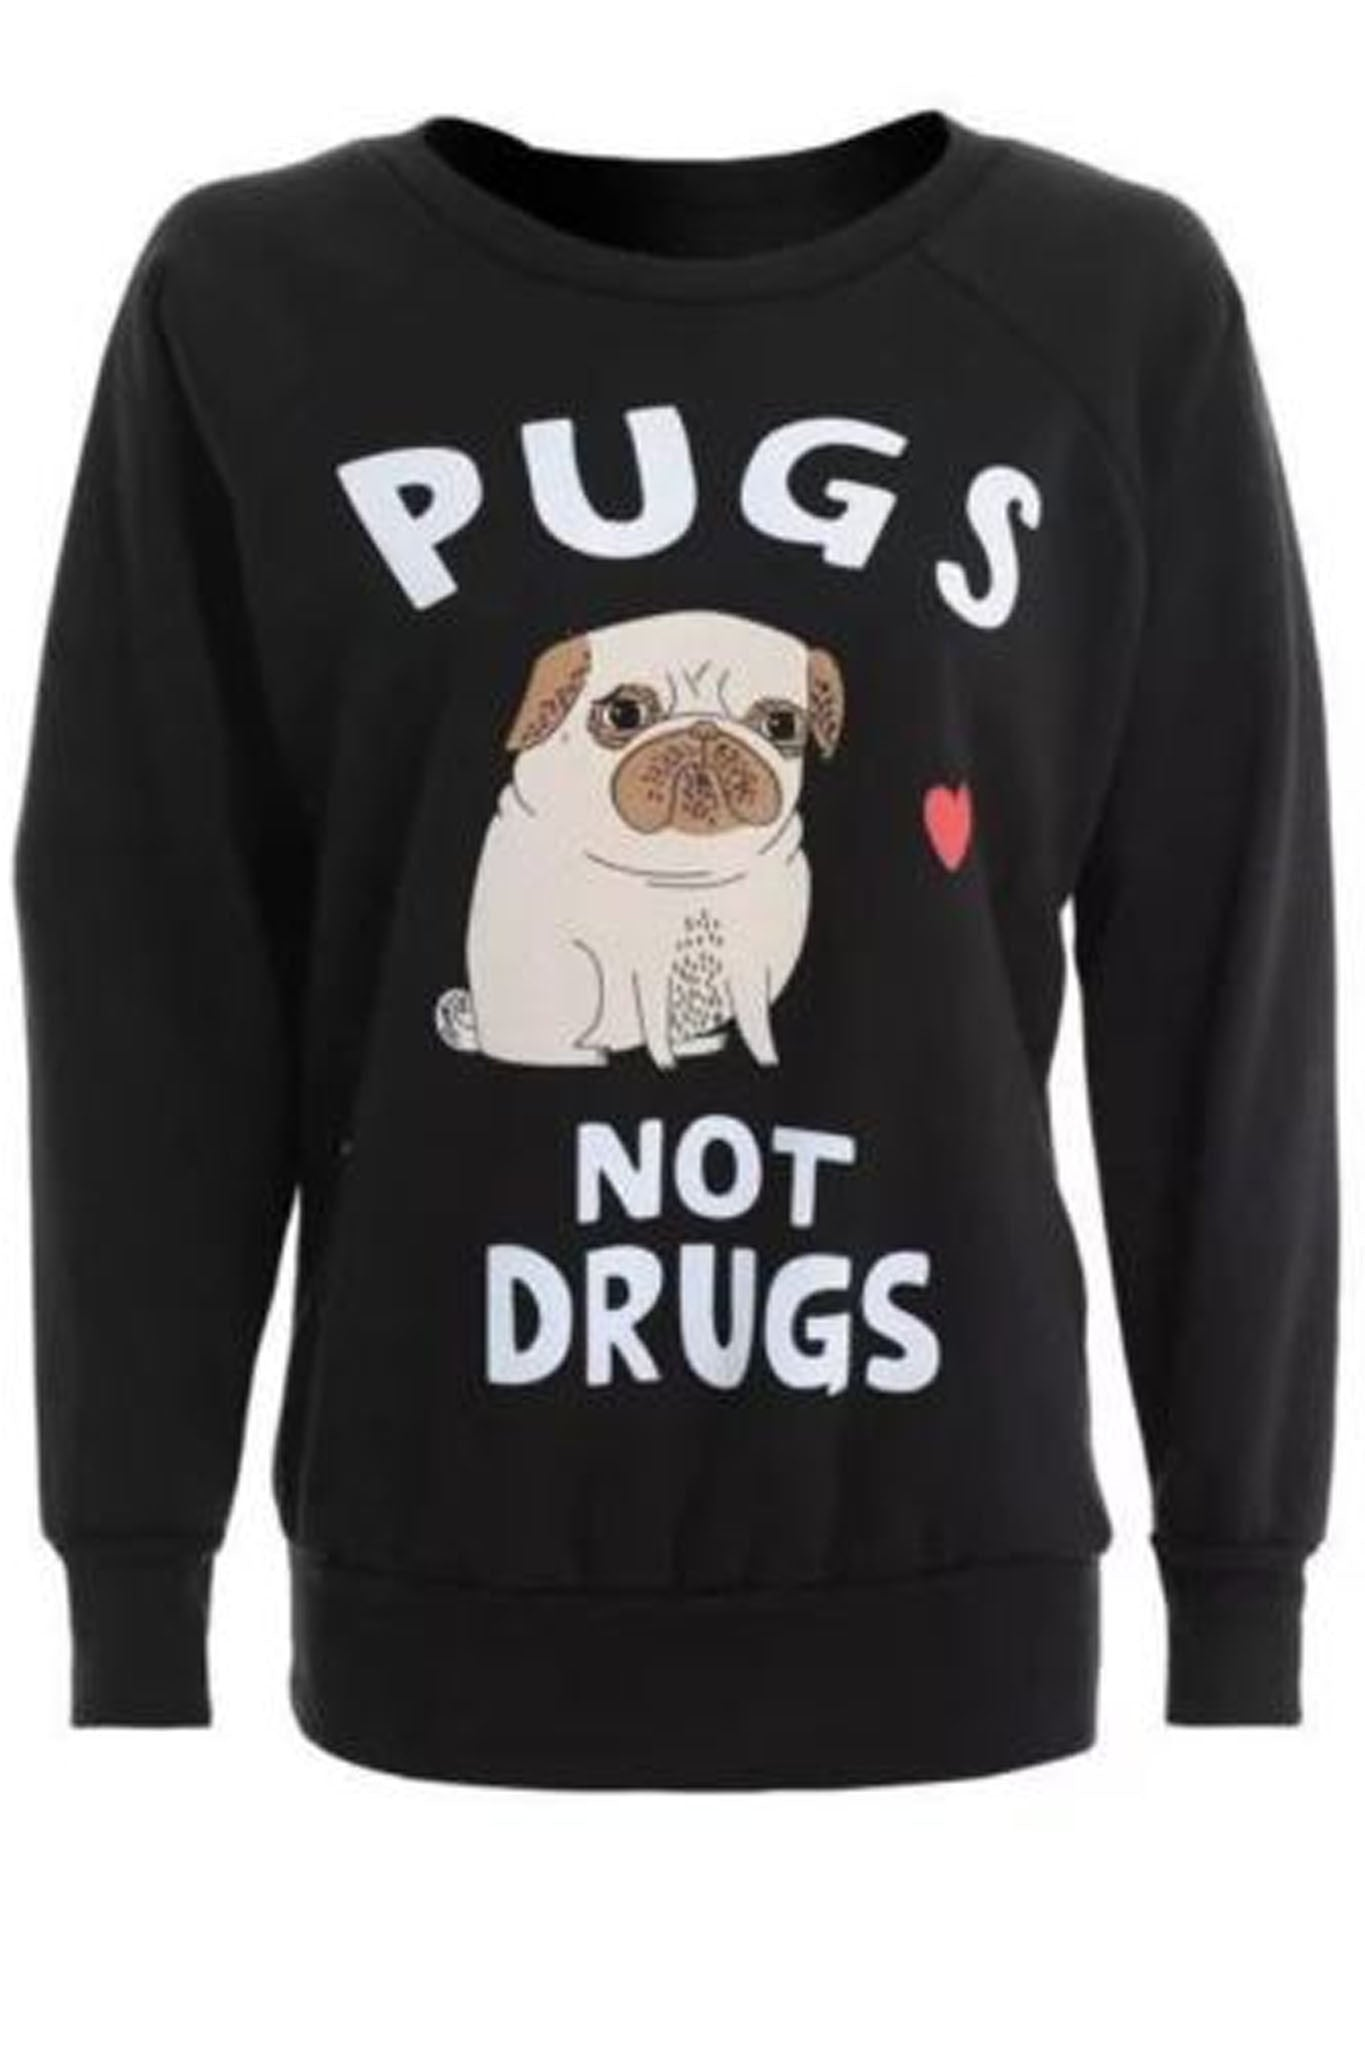 Pugs Not Drugs Sweatshirt Black